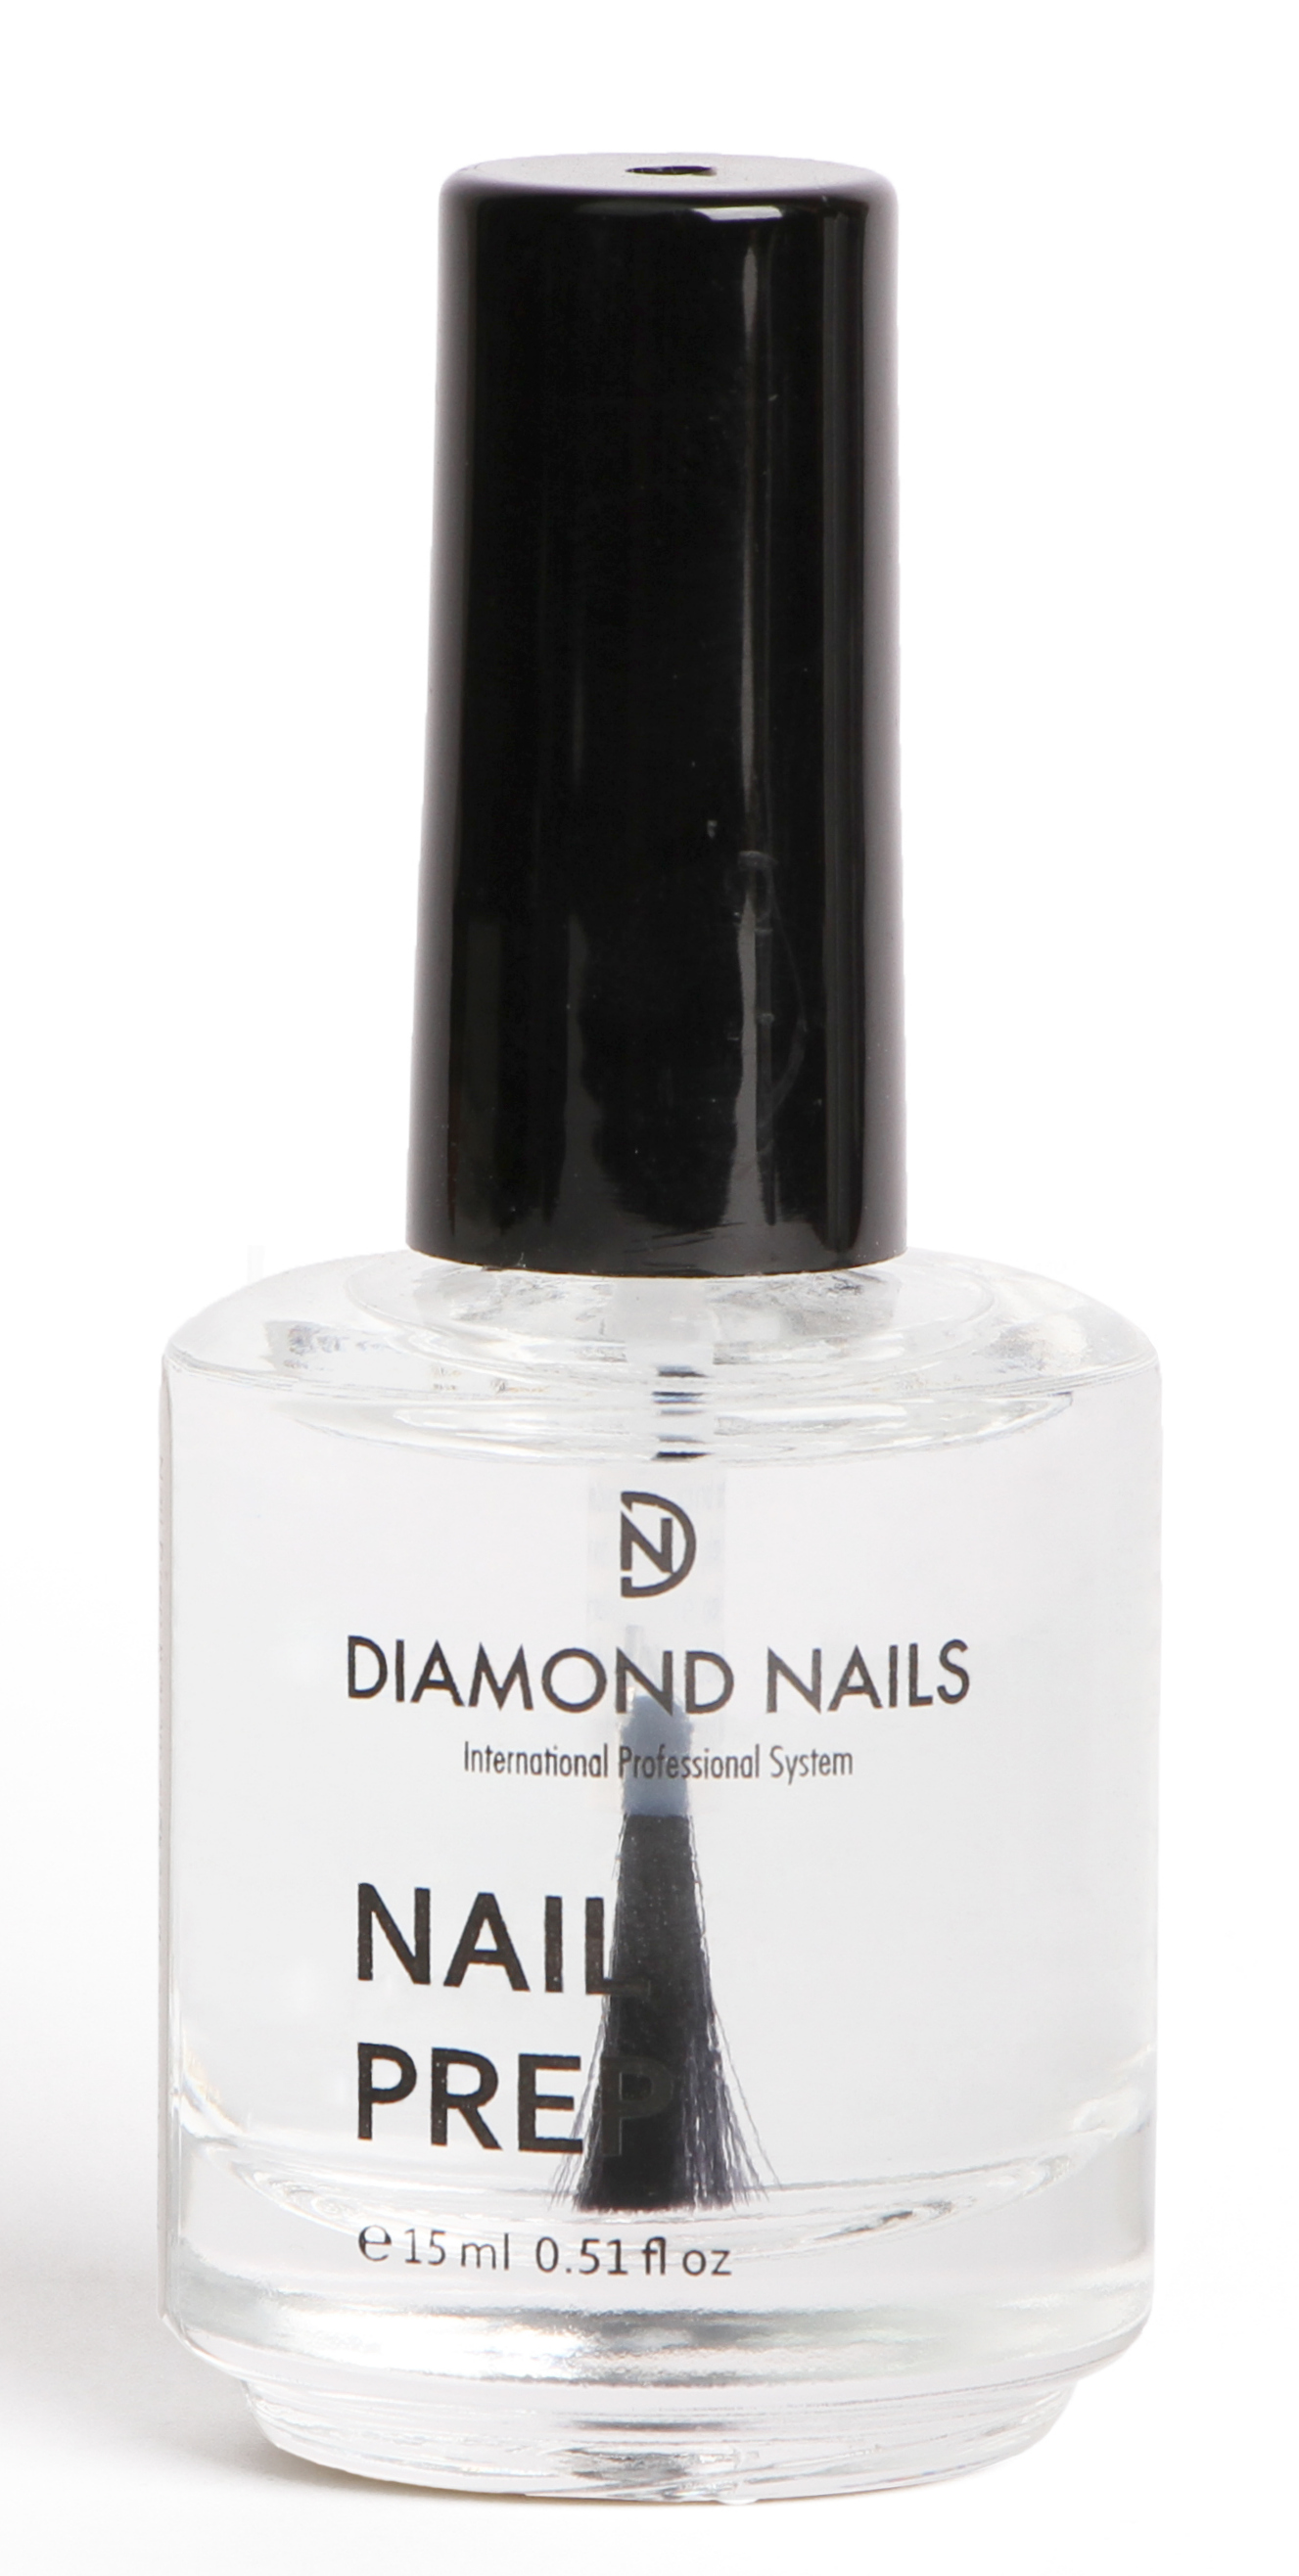 Diamond Nails Nail Prep